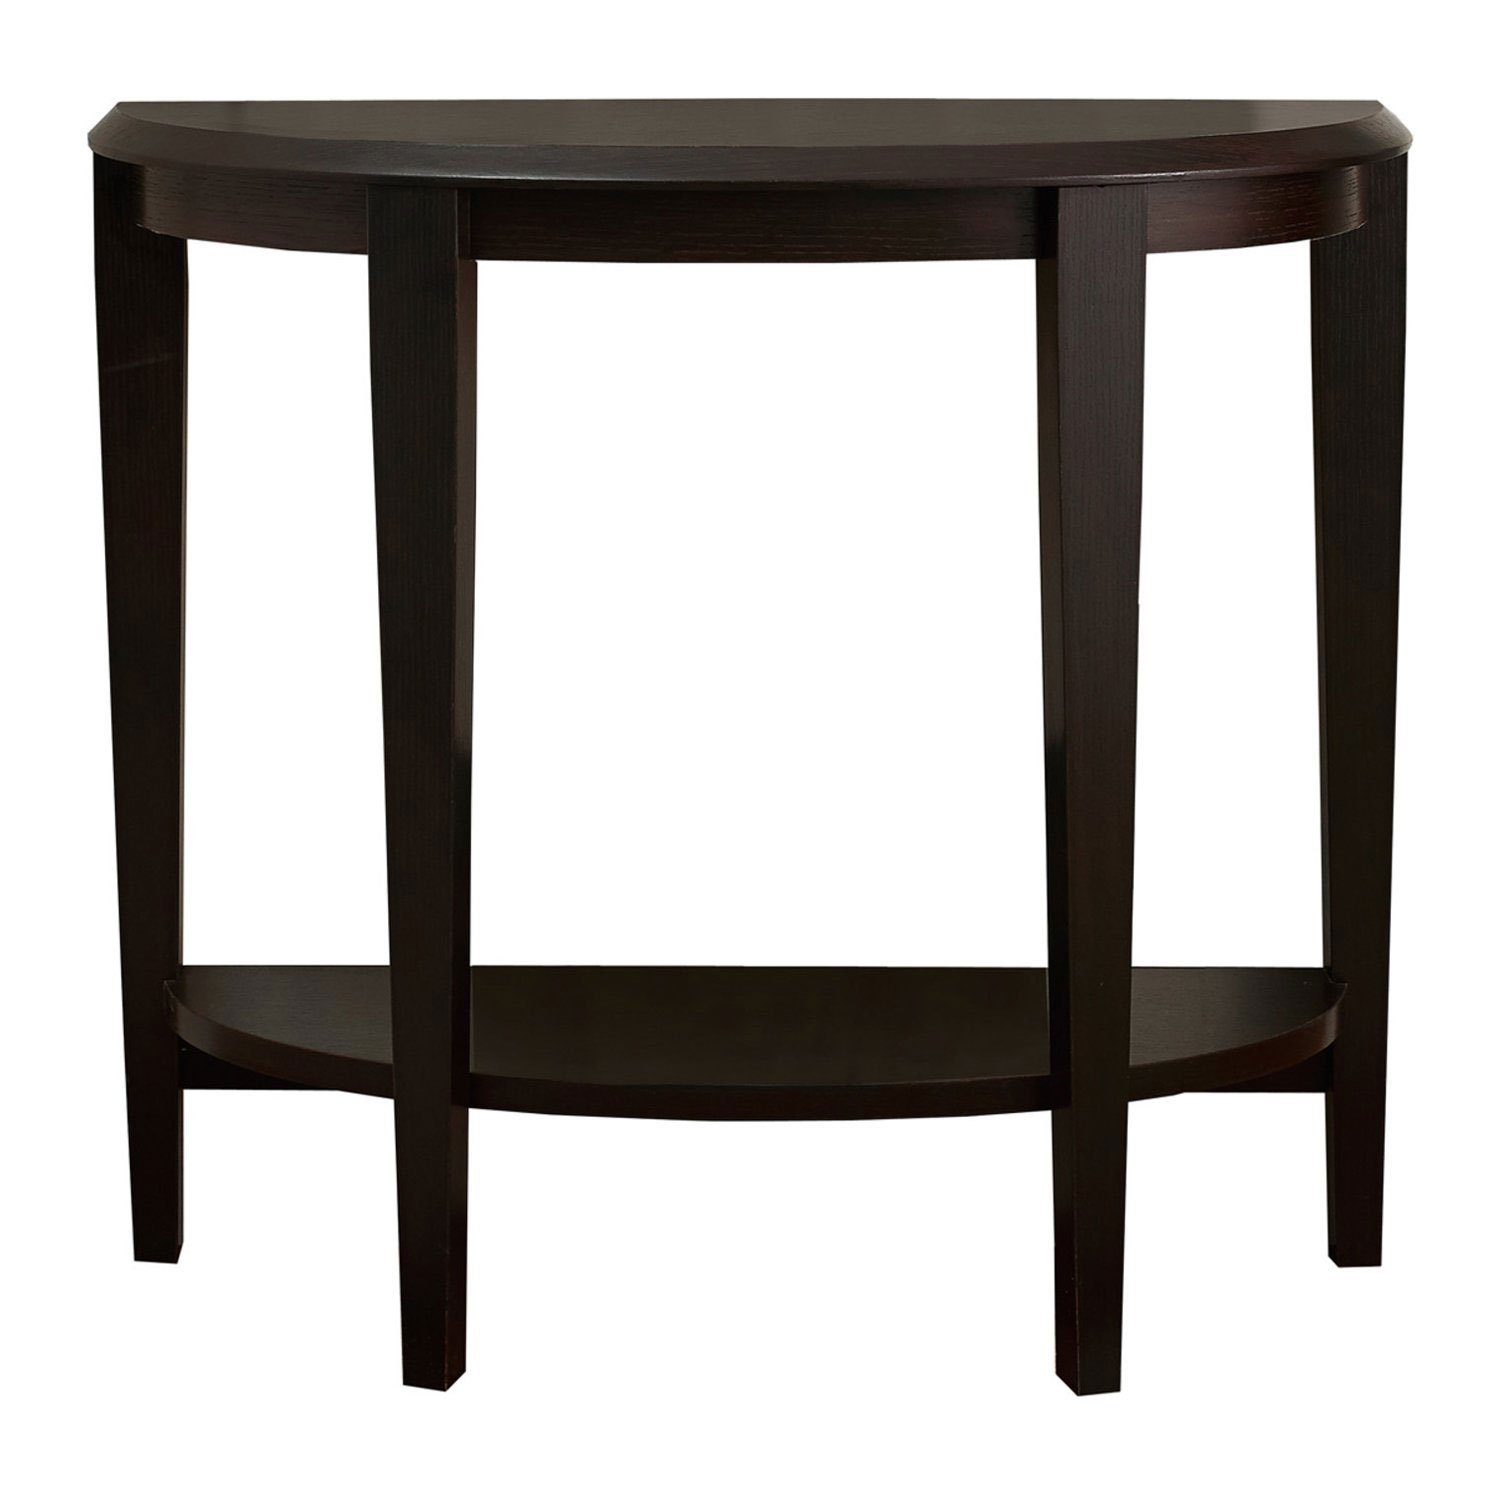 monarch accent table cappuccino hall console narrow depth raw pine furniture tall bar and chairs lamb wood iron coffee round glass chrome side brass end top inch tablecloth